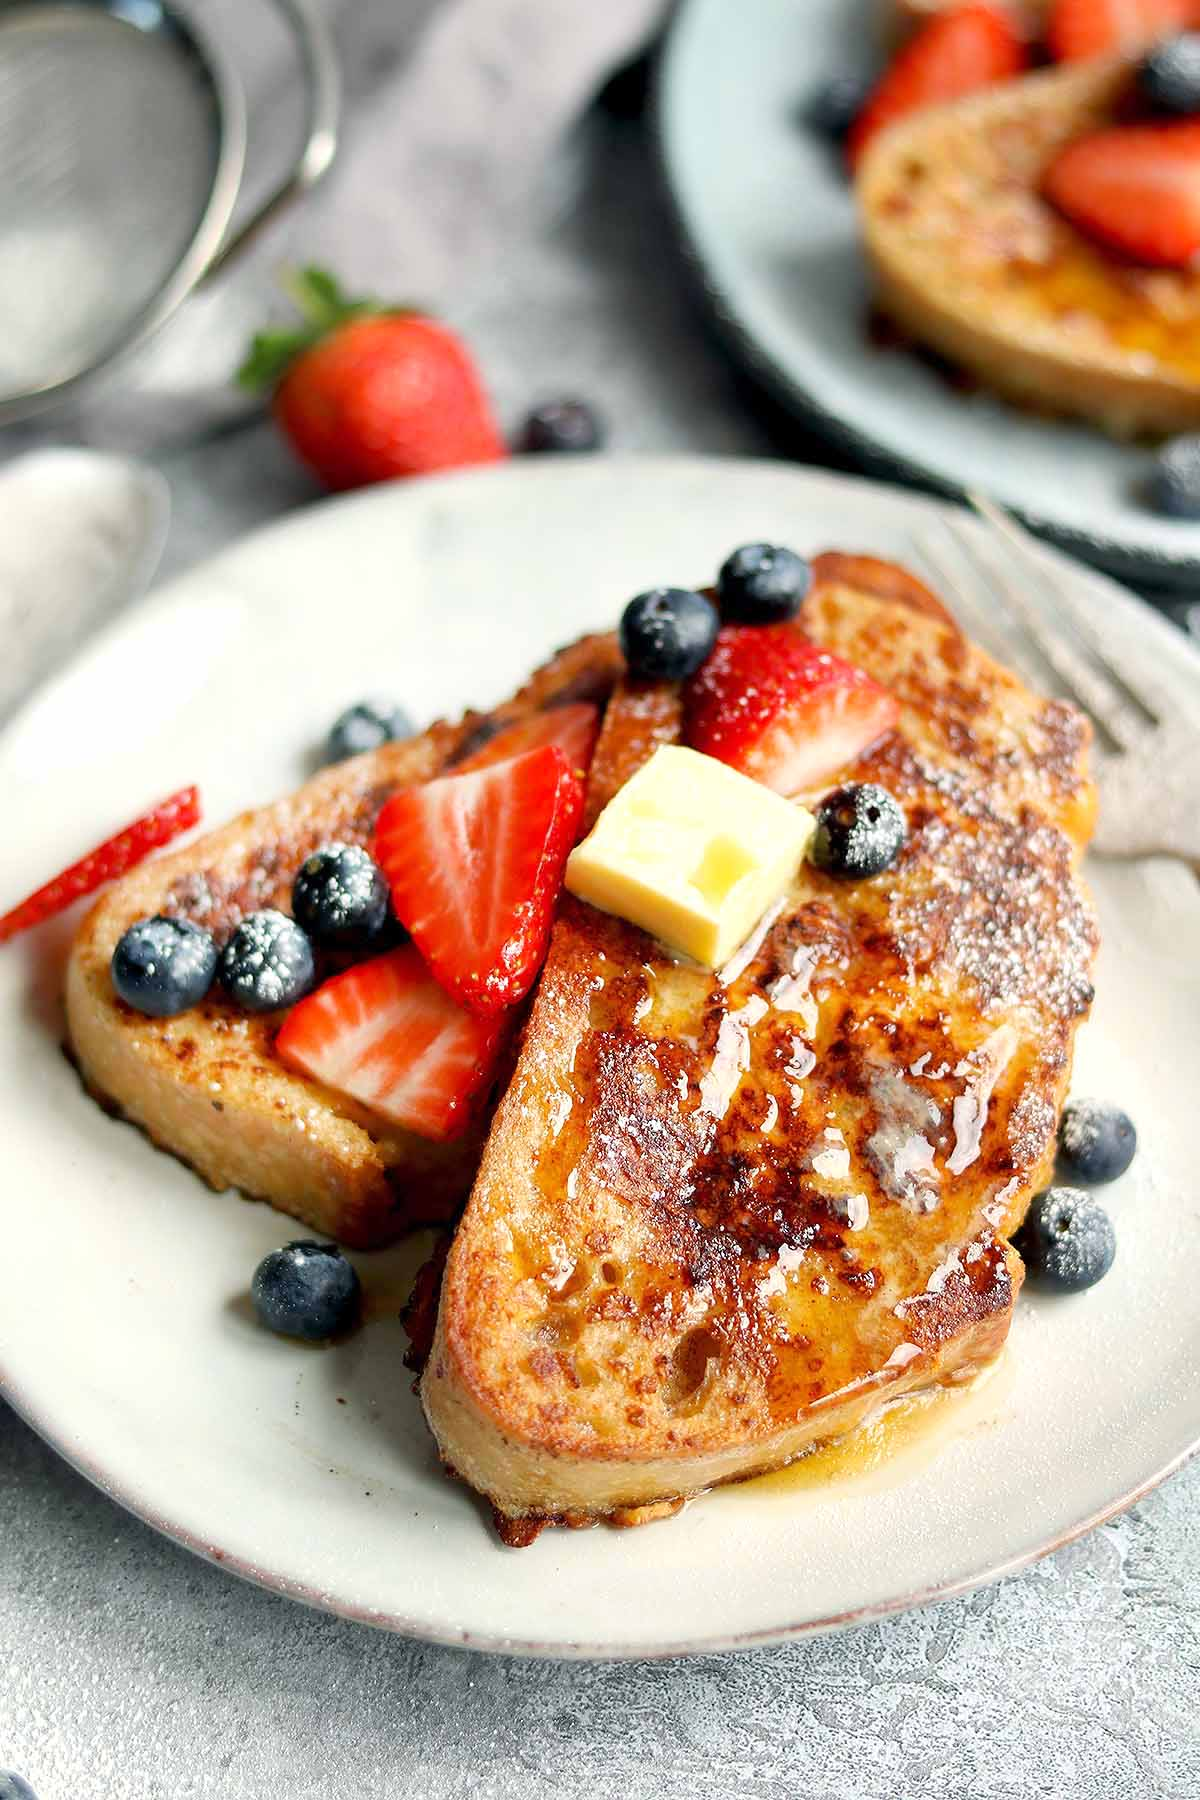 Sourdough French Toast - The Last Food Blog